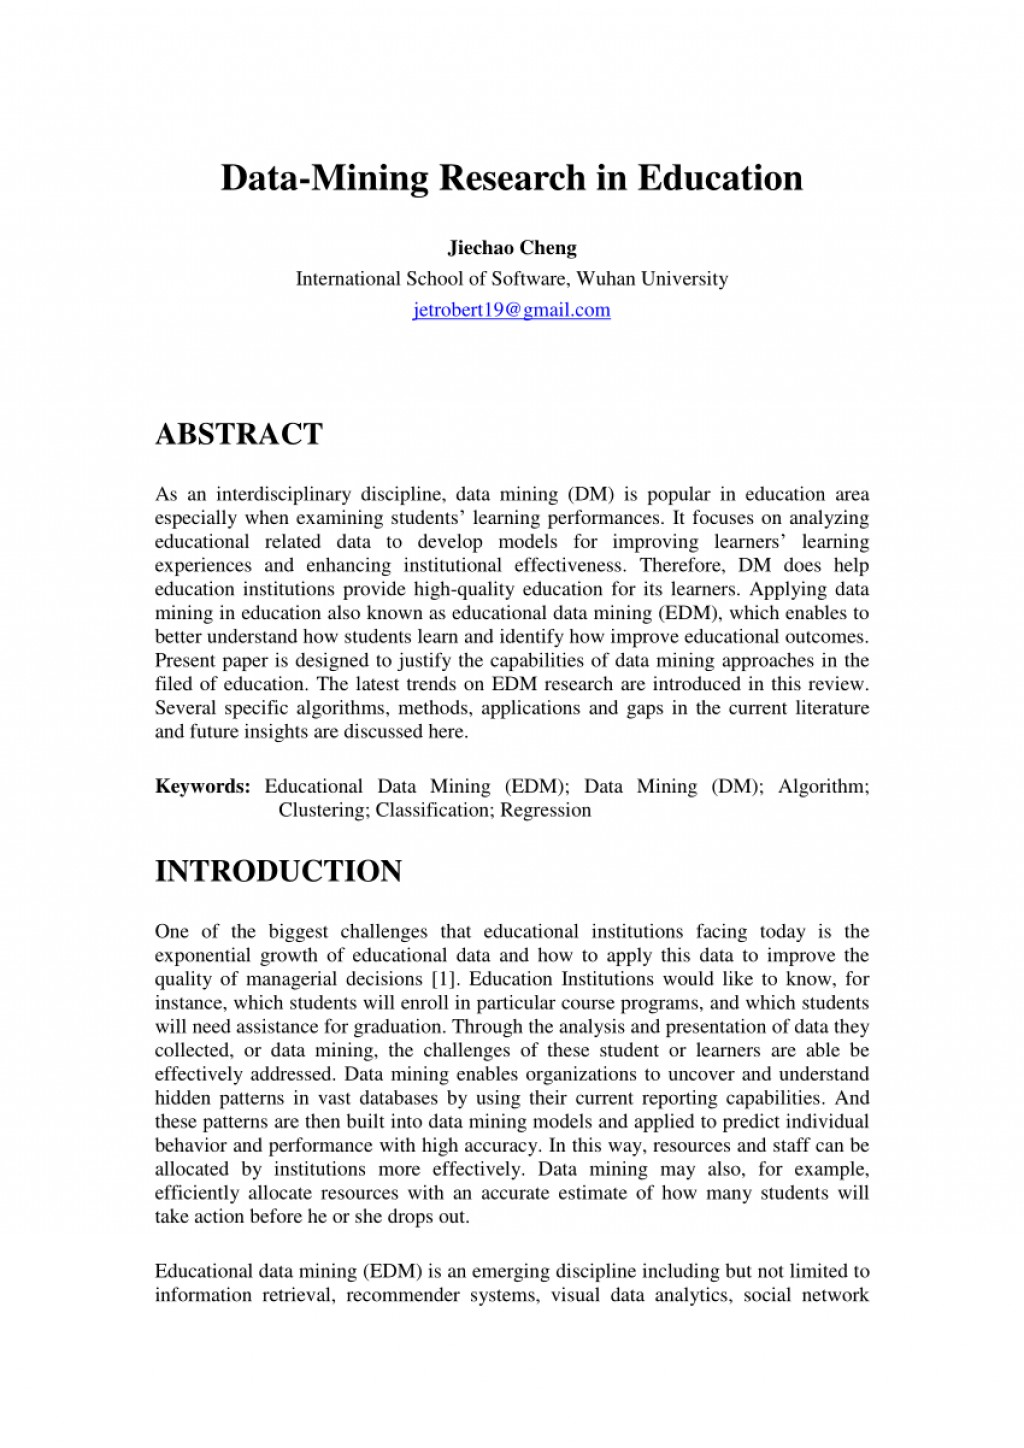 009 Research Paper Educational Data Mining Papers Pdf Sensational Large